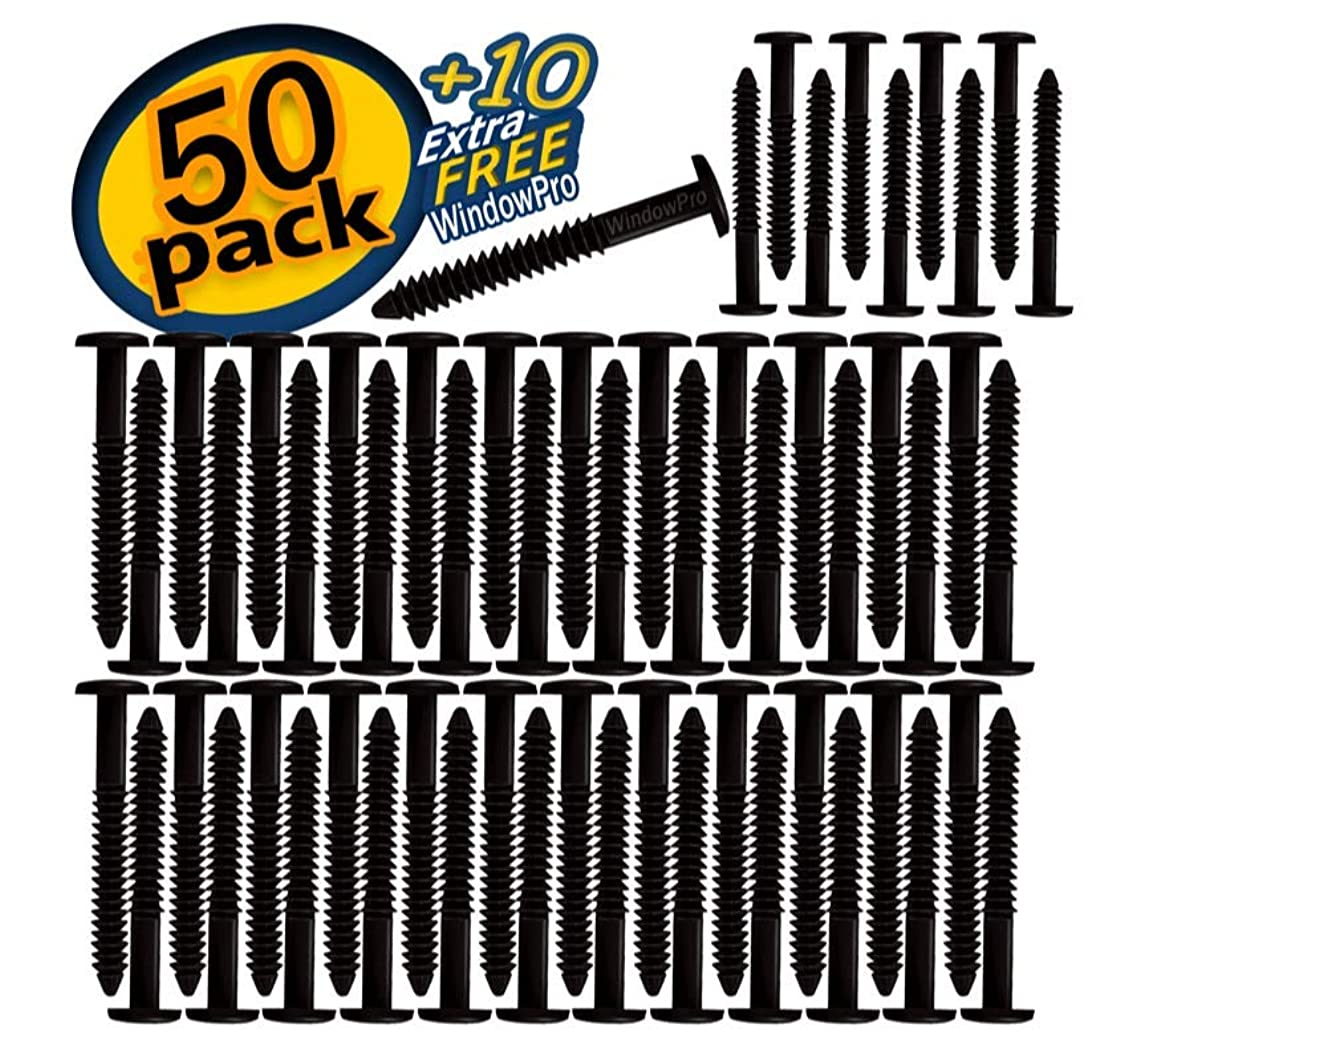 Window Shutters Panel Peg Lok Pin Screws Spikes 3 inch 60 Pack (Black) Exterior Vinyl Shutter Hardware Strongest Made in USA